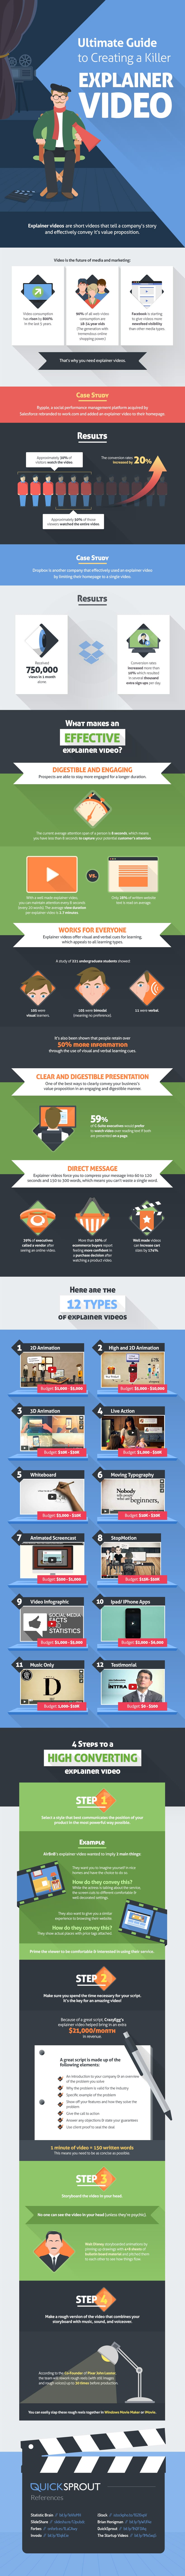 Ultimate-Guide-to-Creating-a-Killer-Explainer-Video